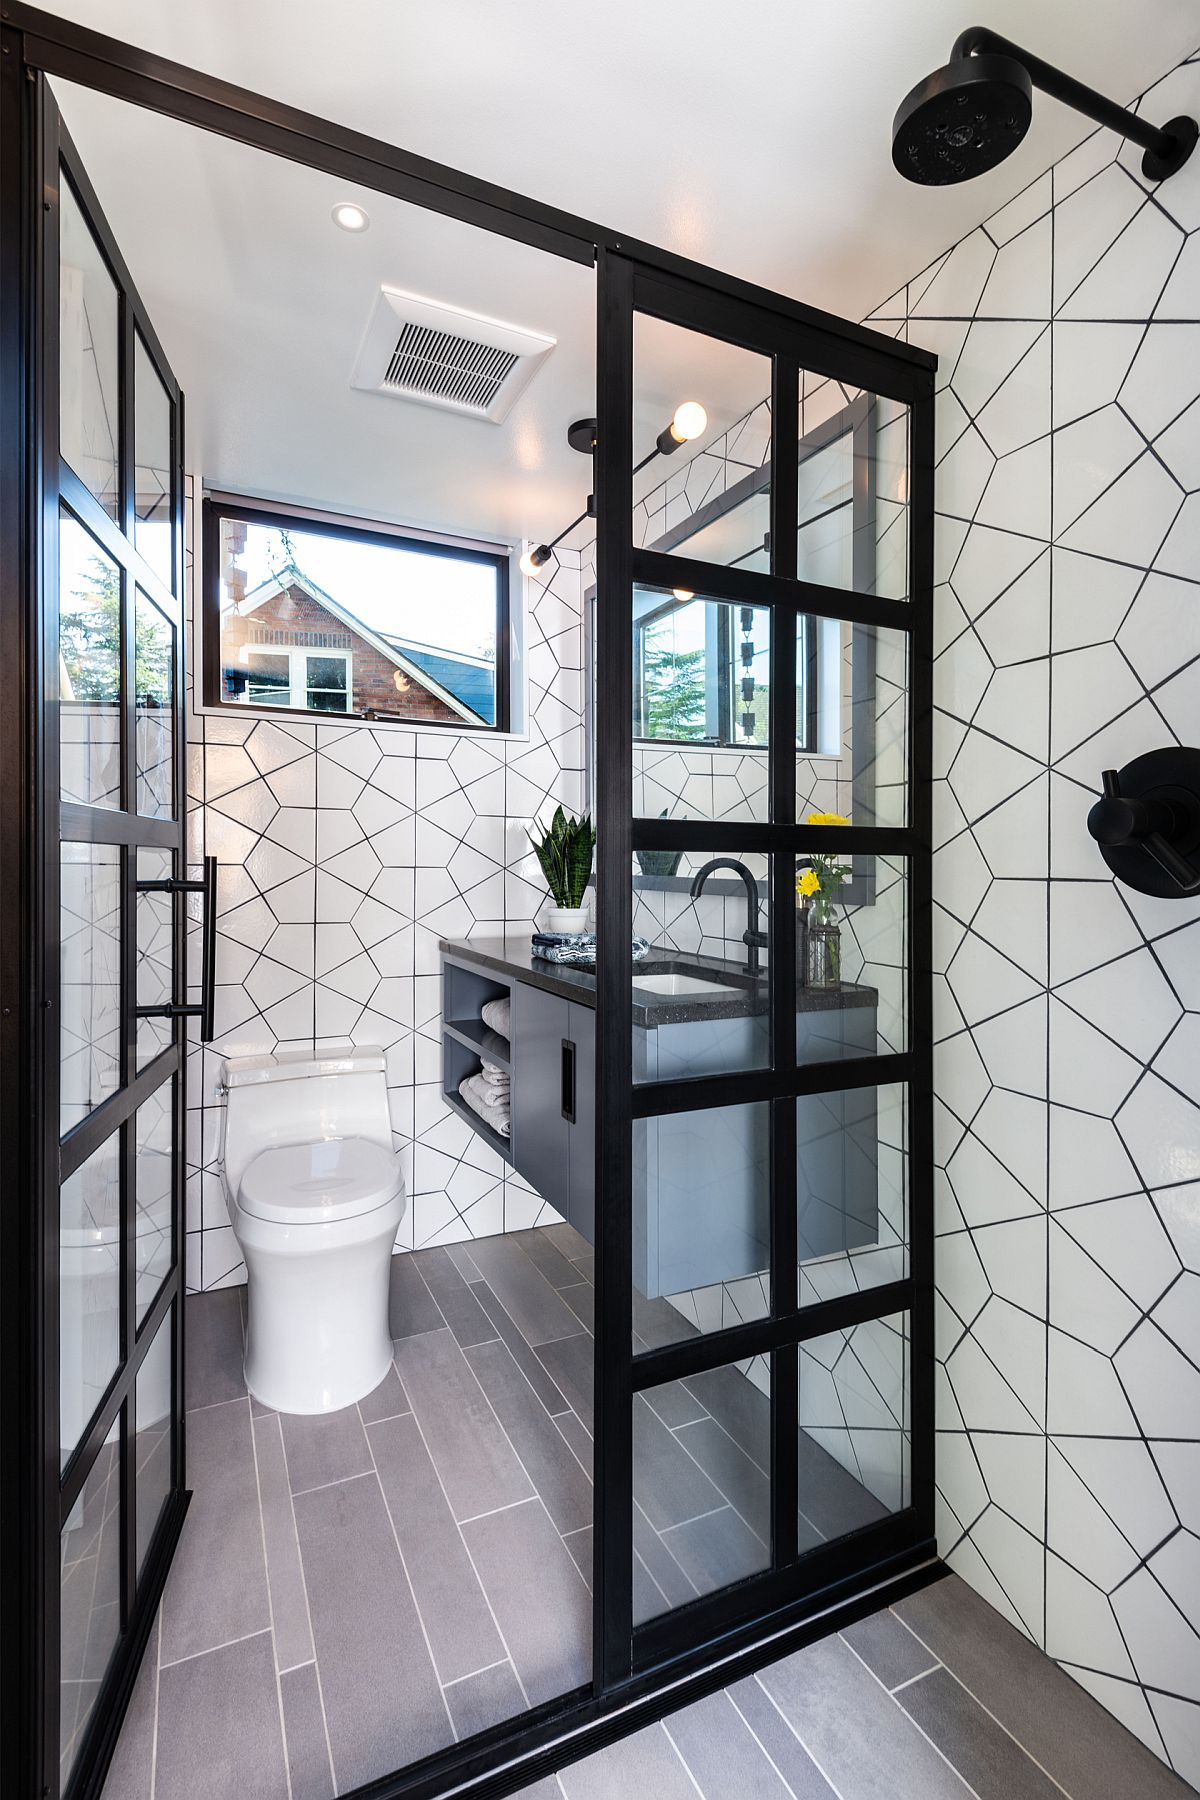 There's a small mudroom with white tiles, a floating vanity and small windows